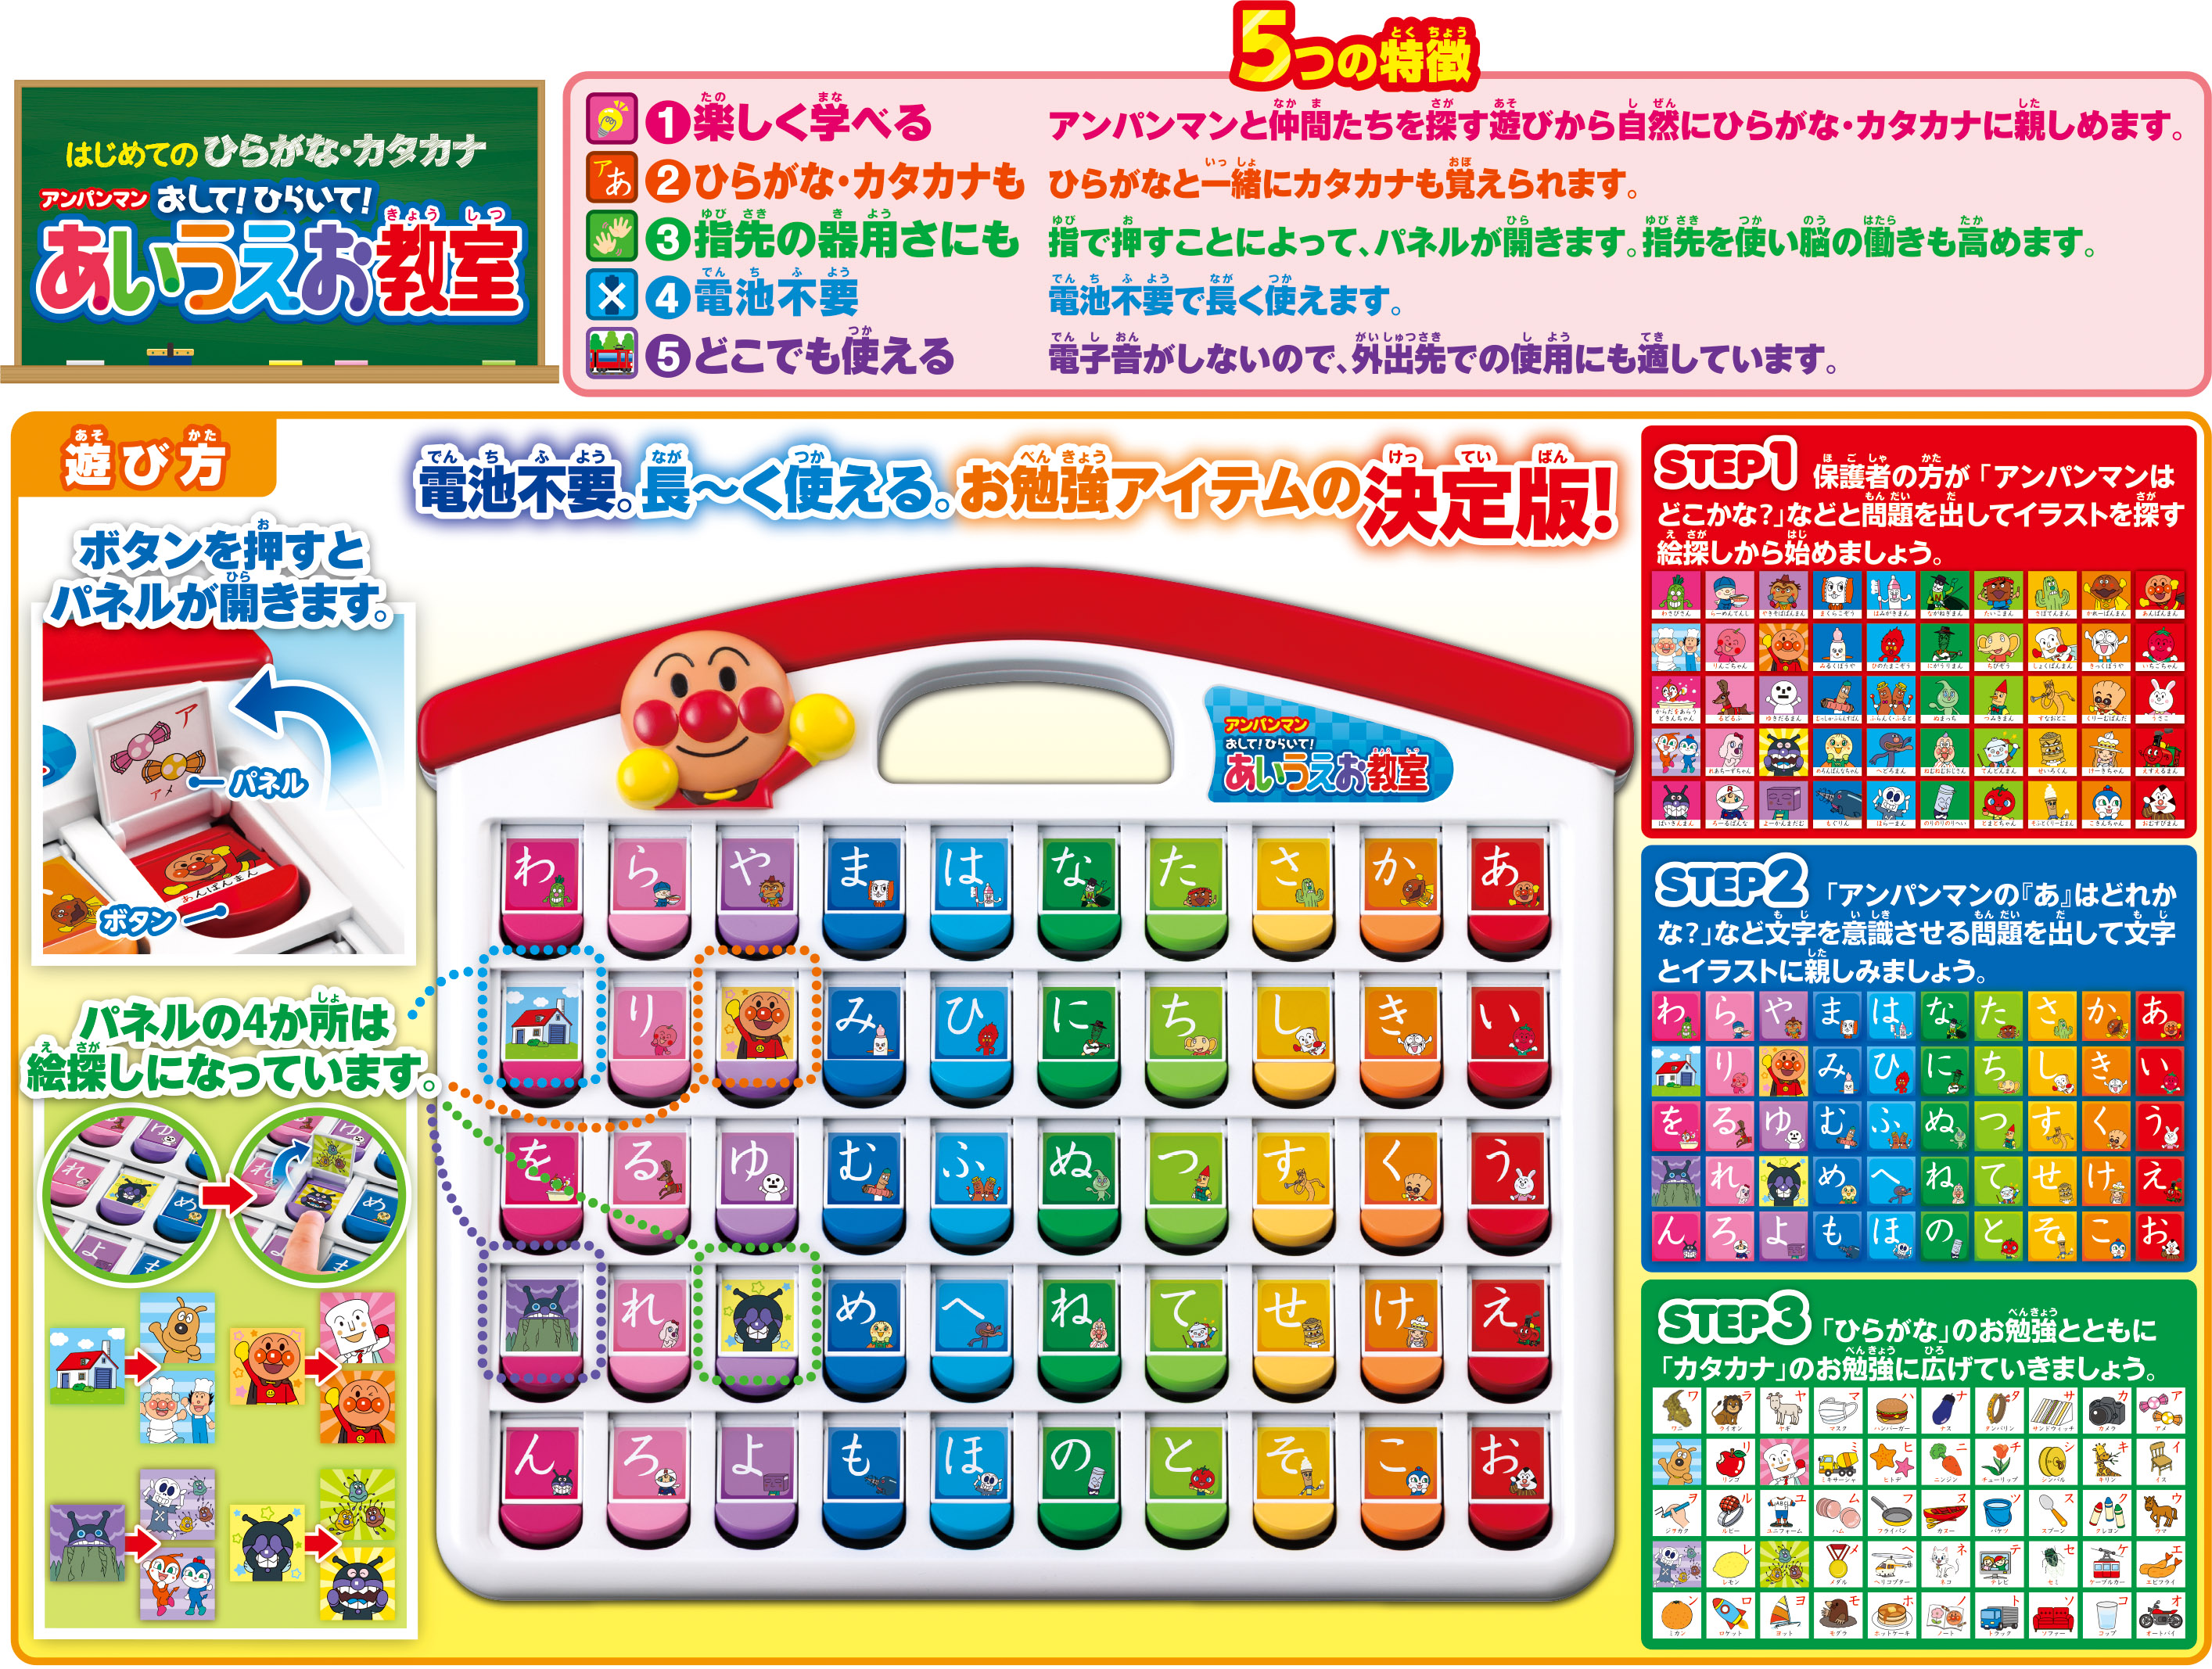 http://www.agatsuma.co.jp/product_test/new_goods/image/anpanman/4971404314924_2_l.jpg